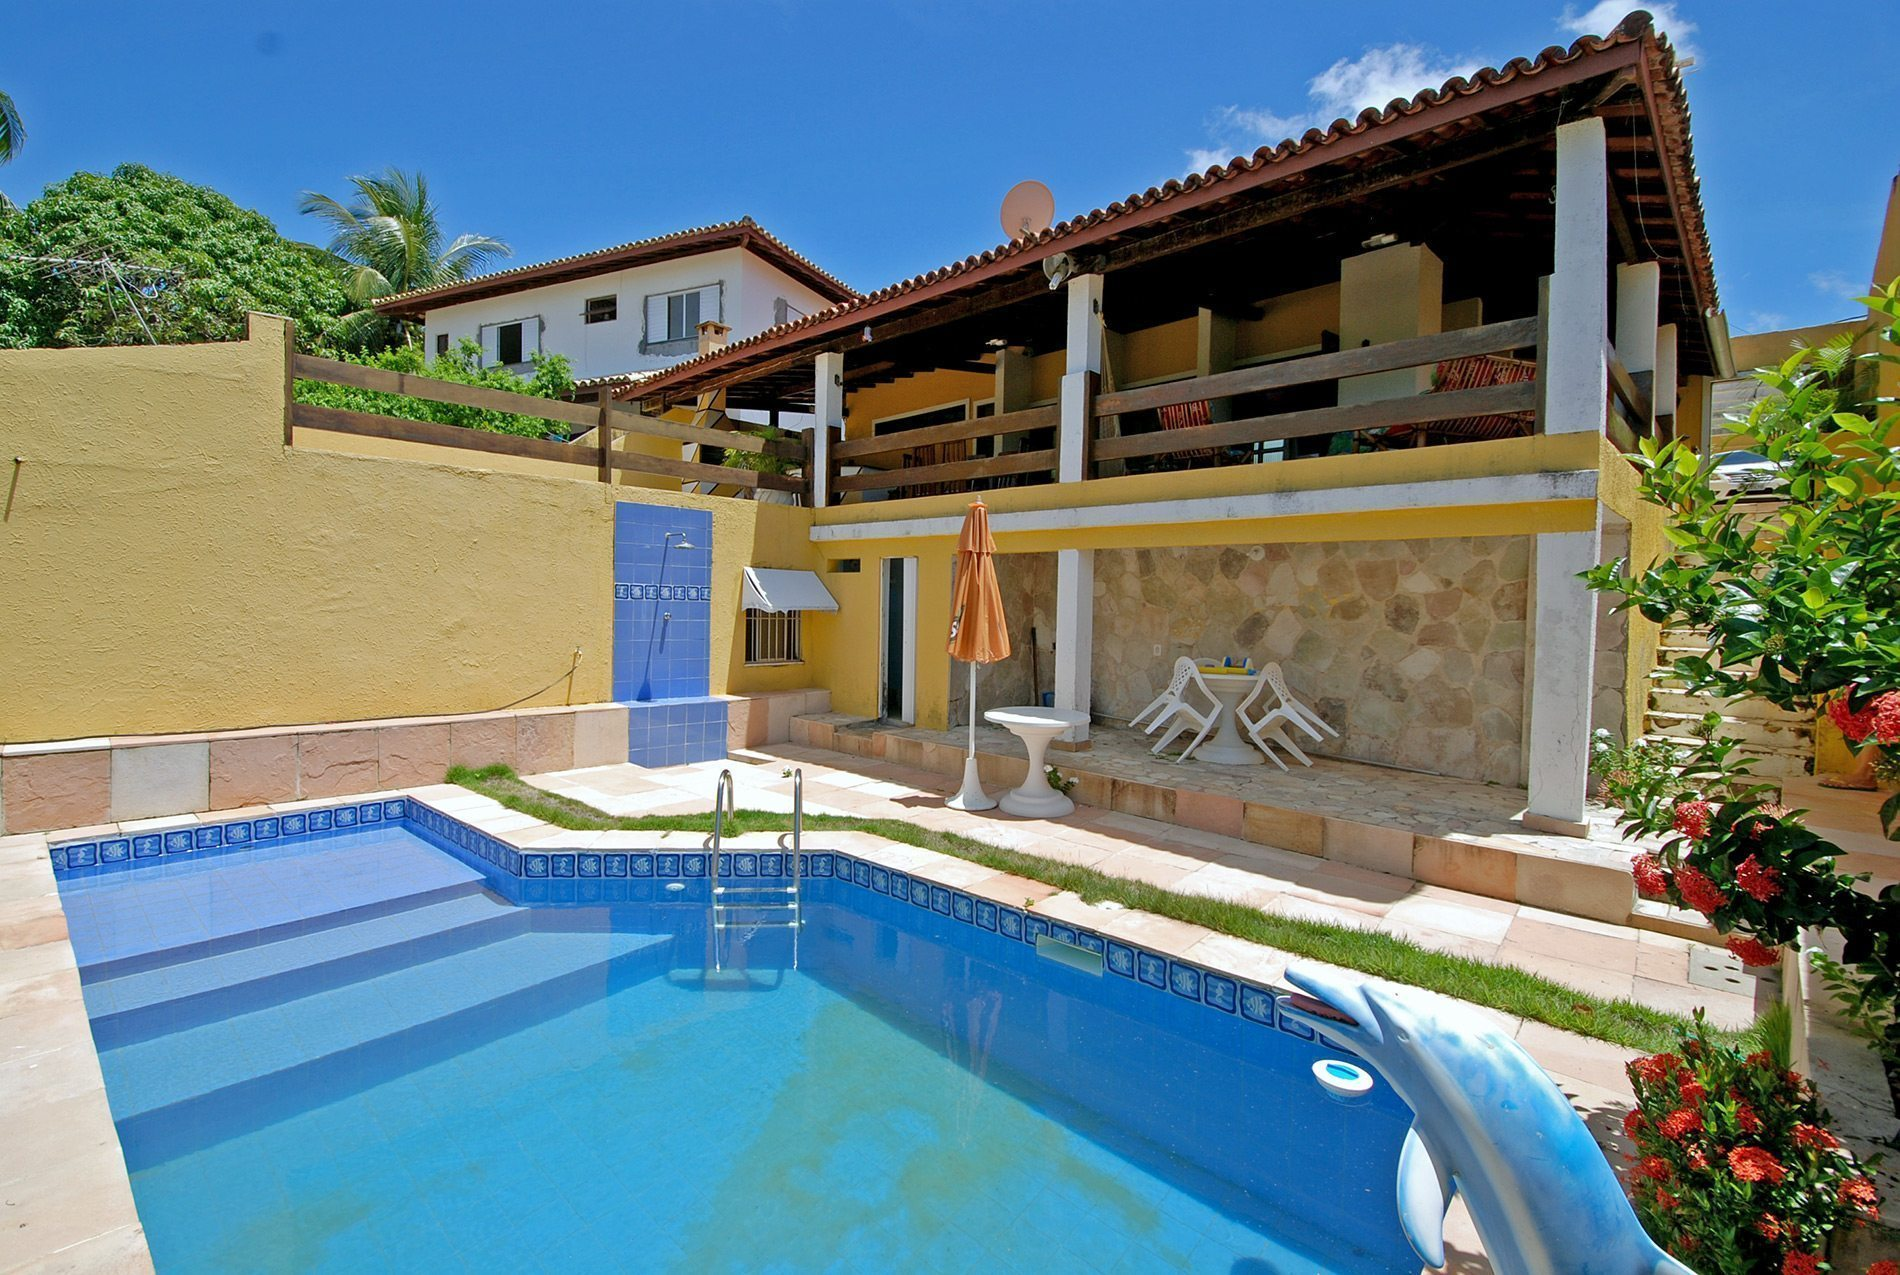 Home for sale Vilas do Atlantico – Lauro de Freitas